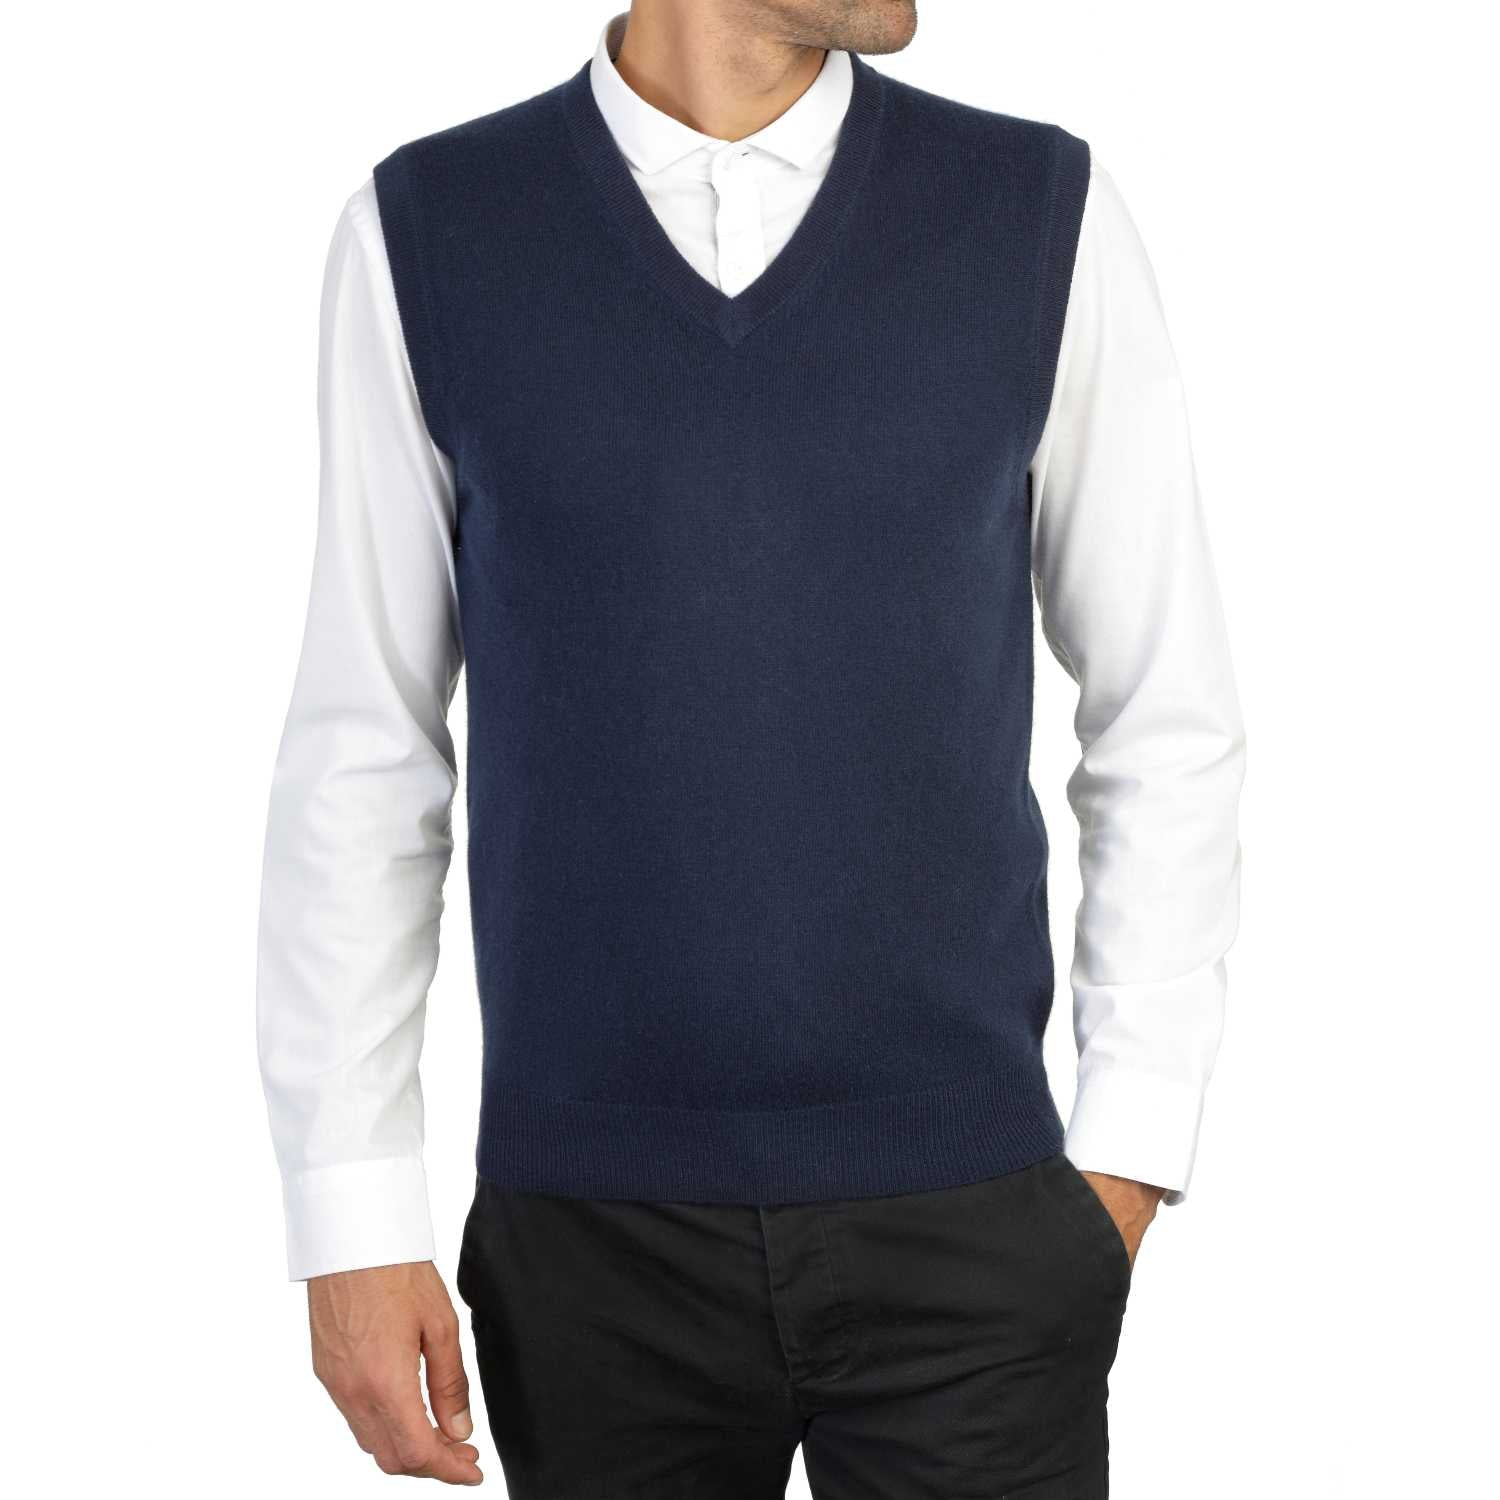 Mens Navy Blue Cashmere Sleeveless Vest Sweater | Front | Shop at The Cashmere Choice | London